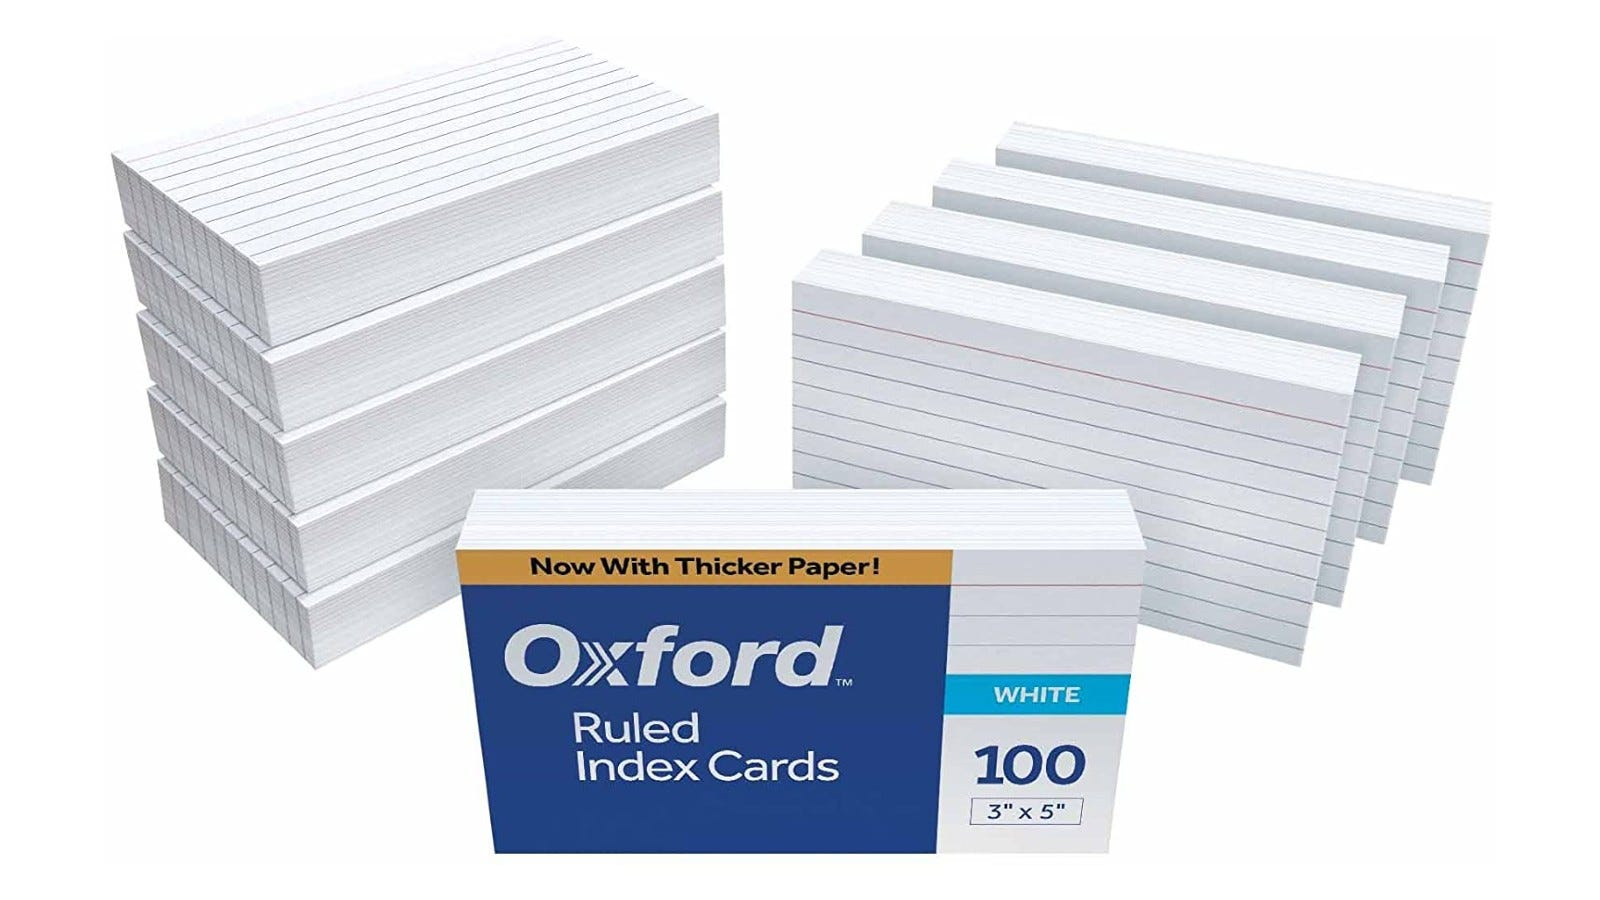 10 stacks of white Oxford ruled index cards